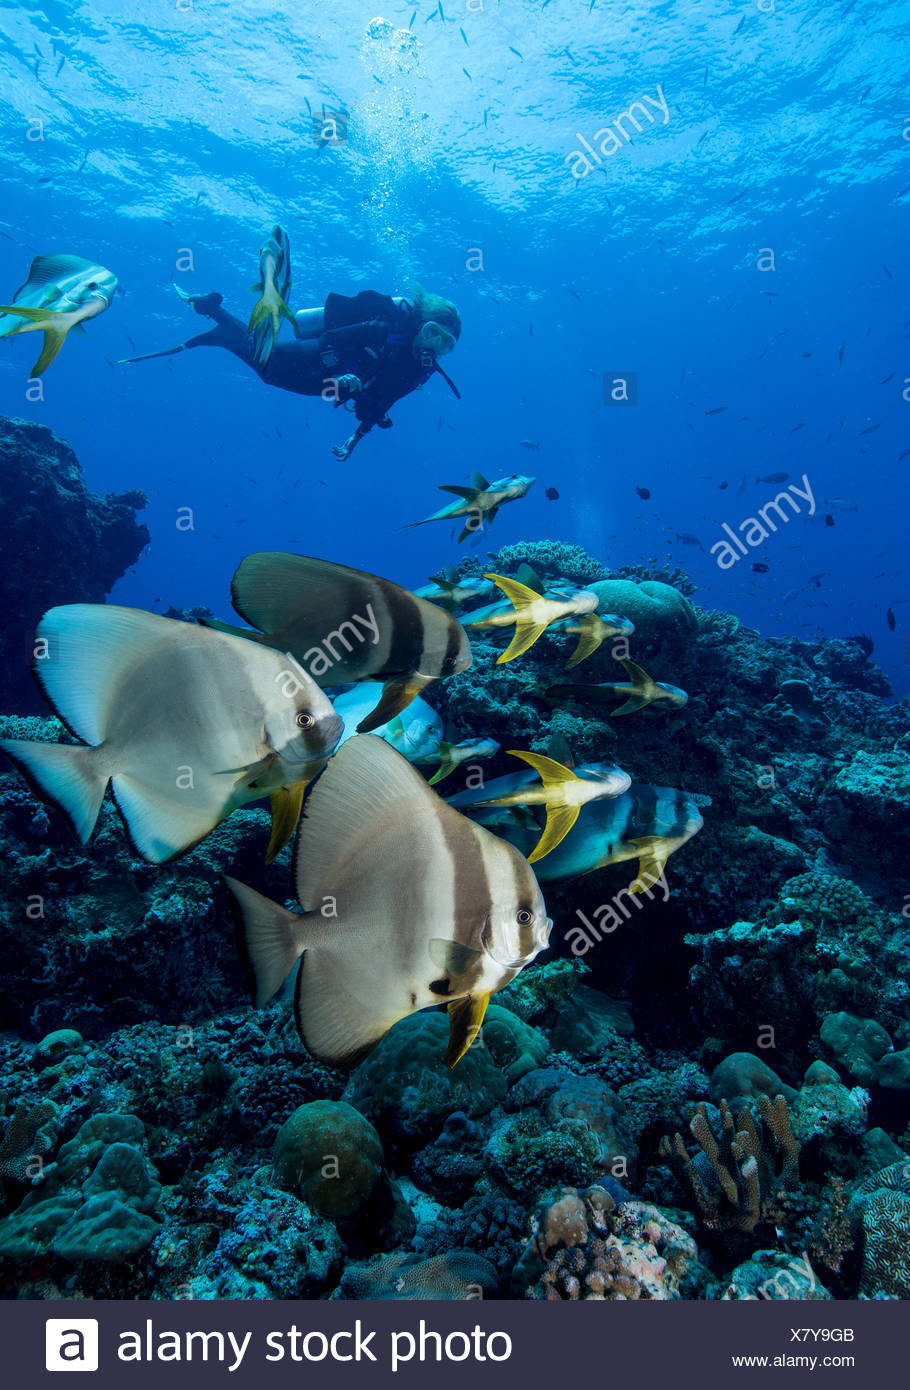 Diver and schooling Spadefish. - Stock Image